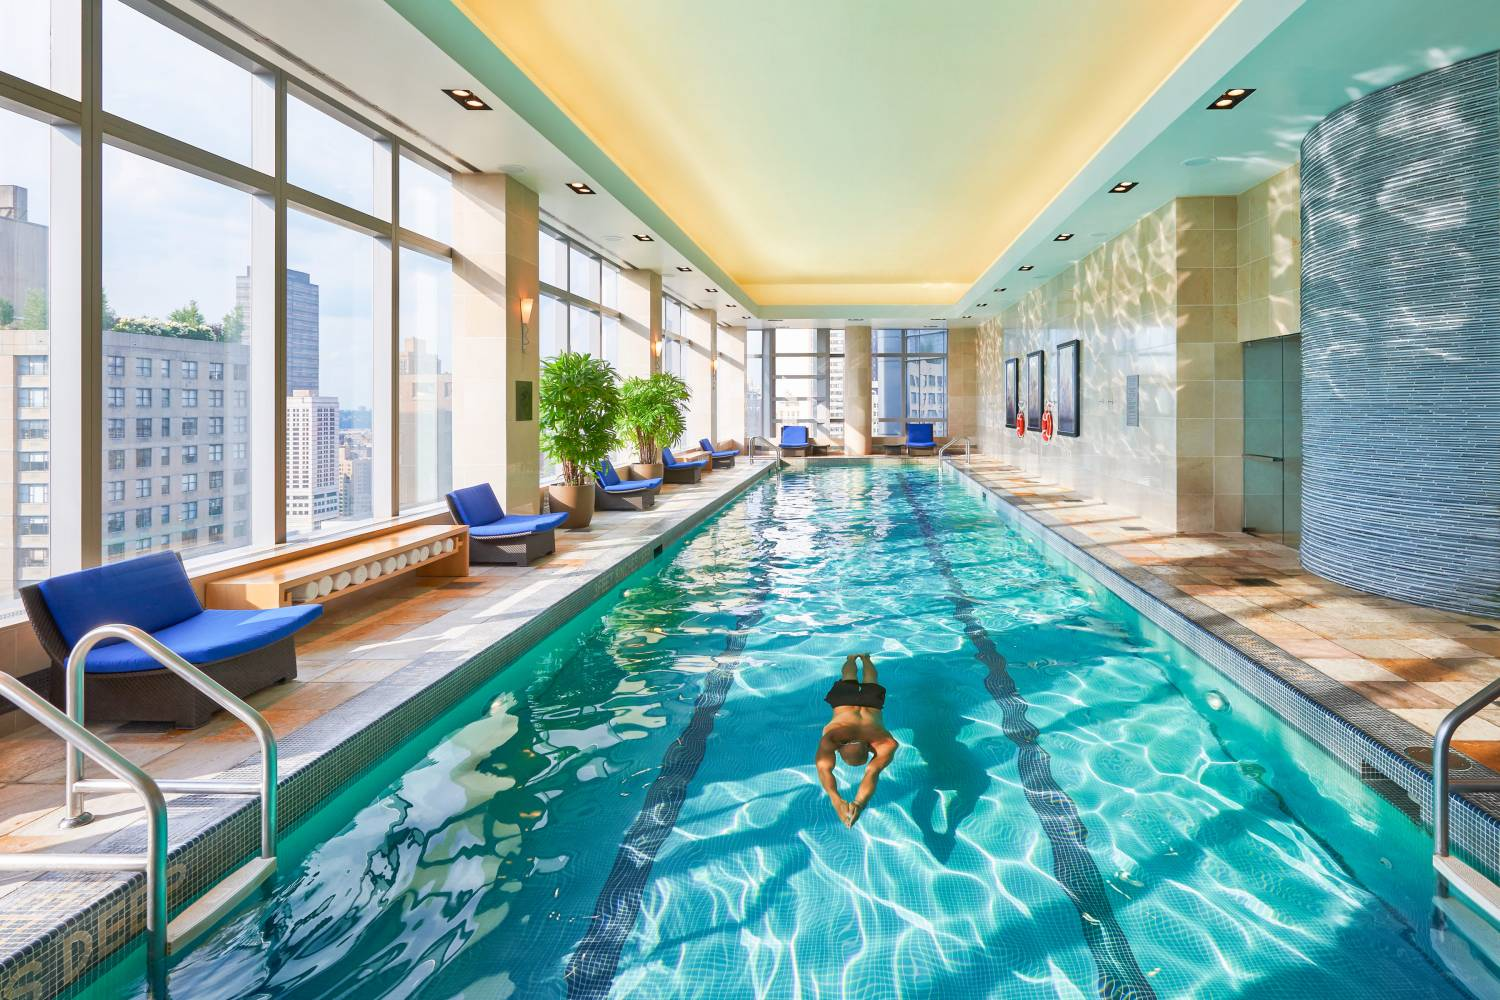 mandarin-oriental-new-york-spa-pool_1500_1000_70_c1